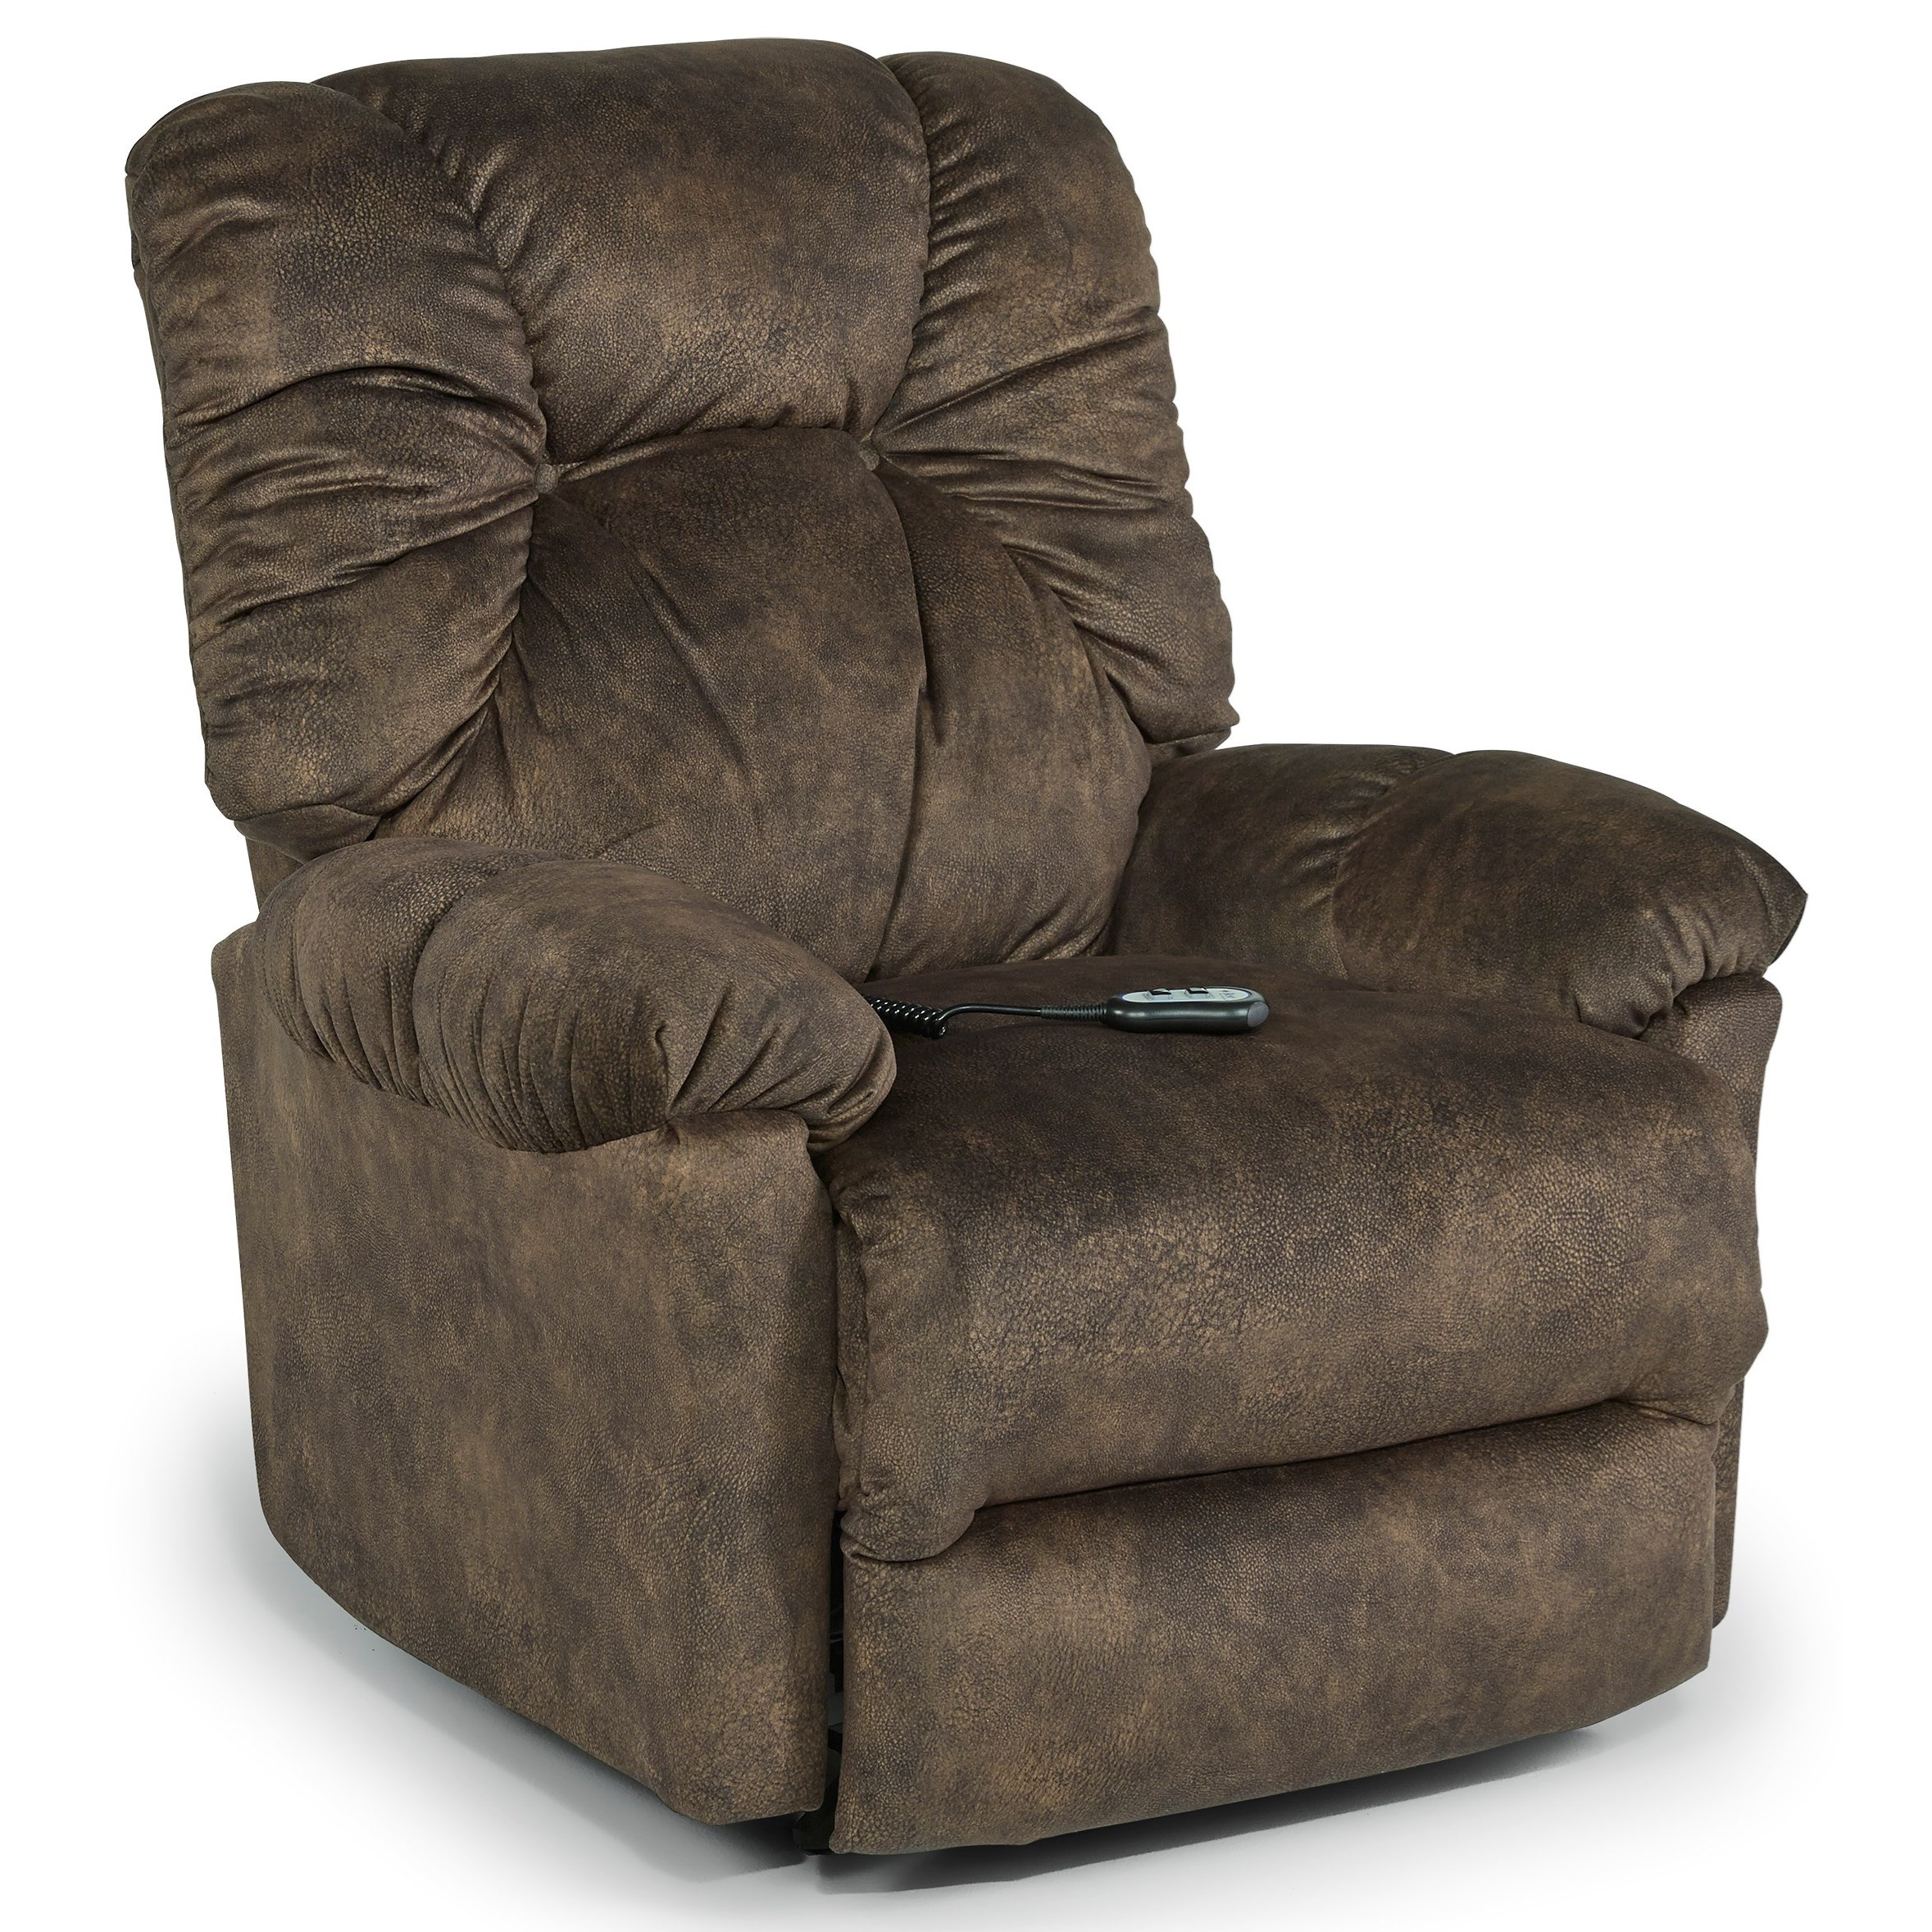 Medium Recliners Power Lift Recliner by Best Home Furnishings at Turk Furniture